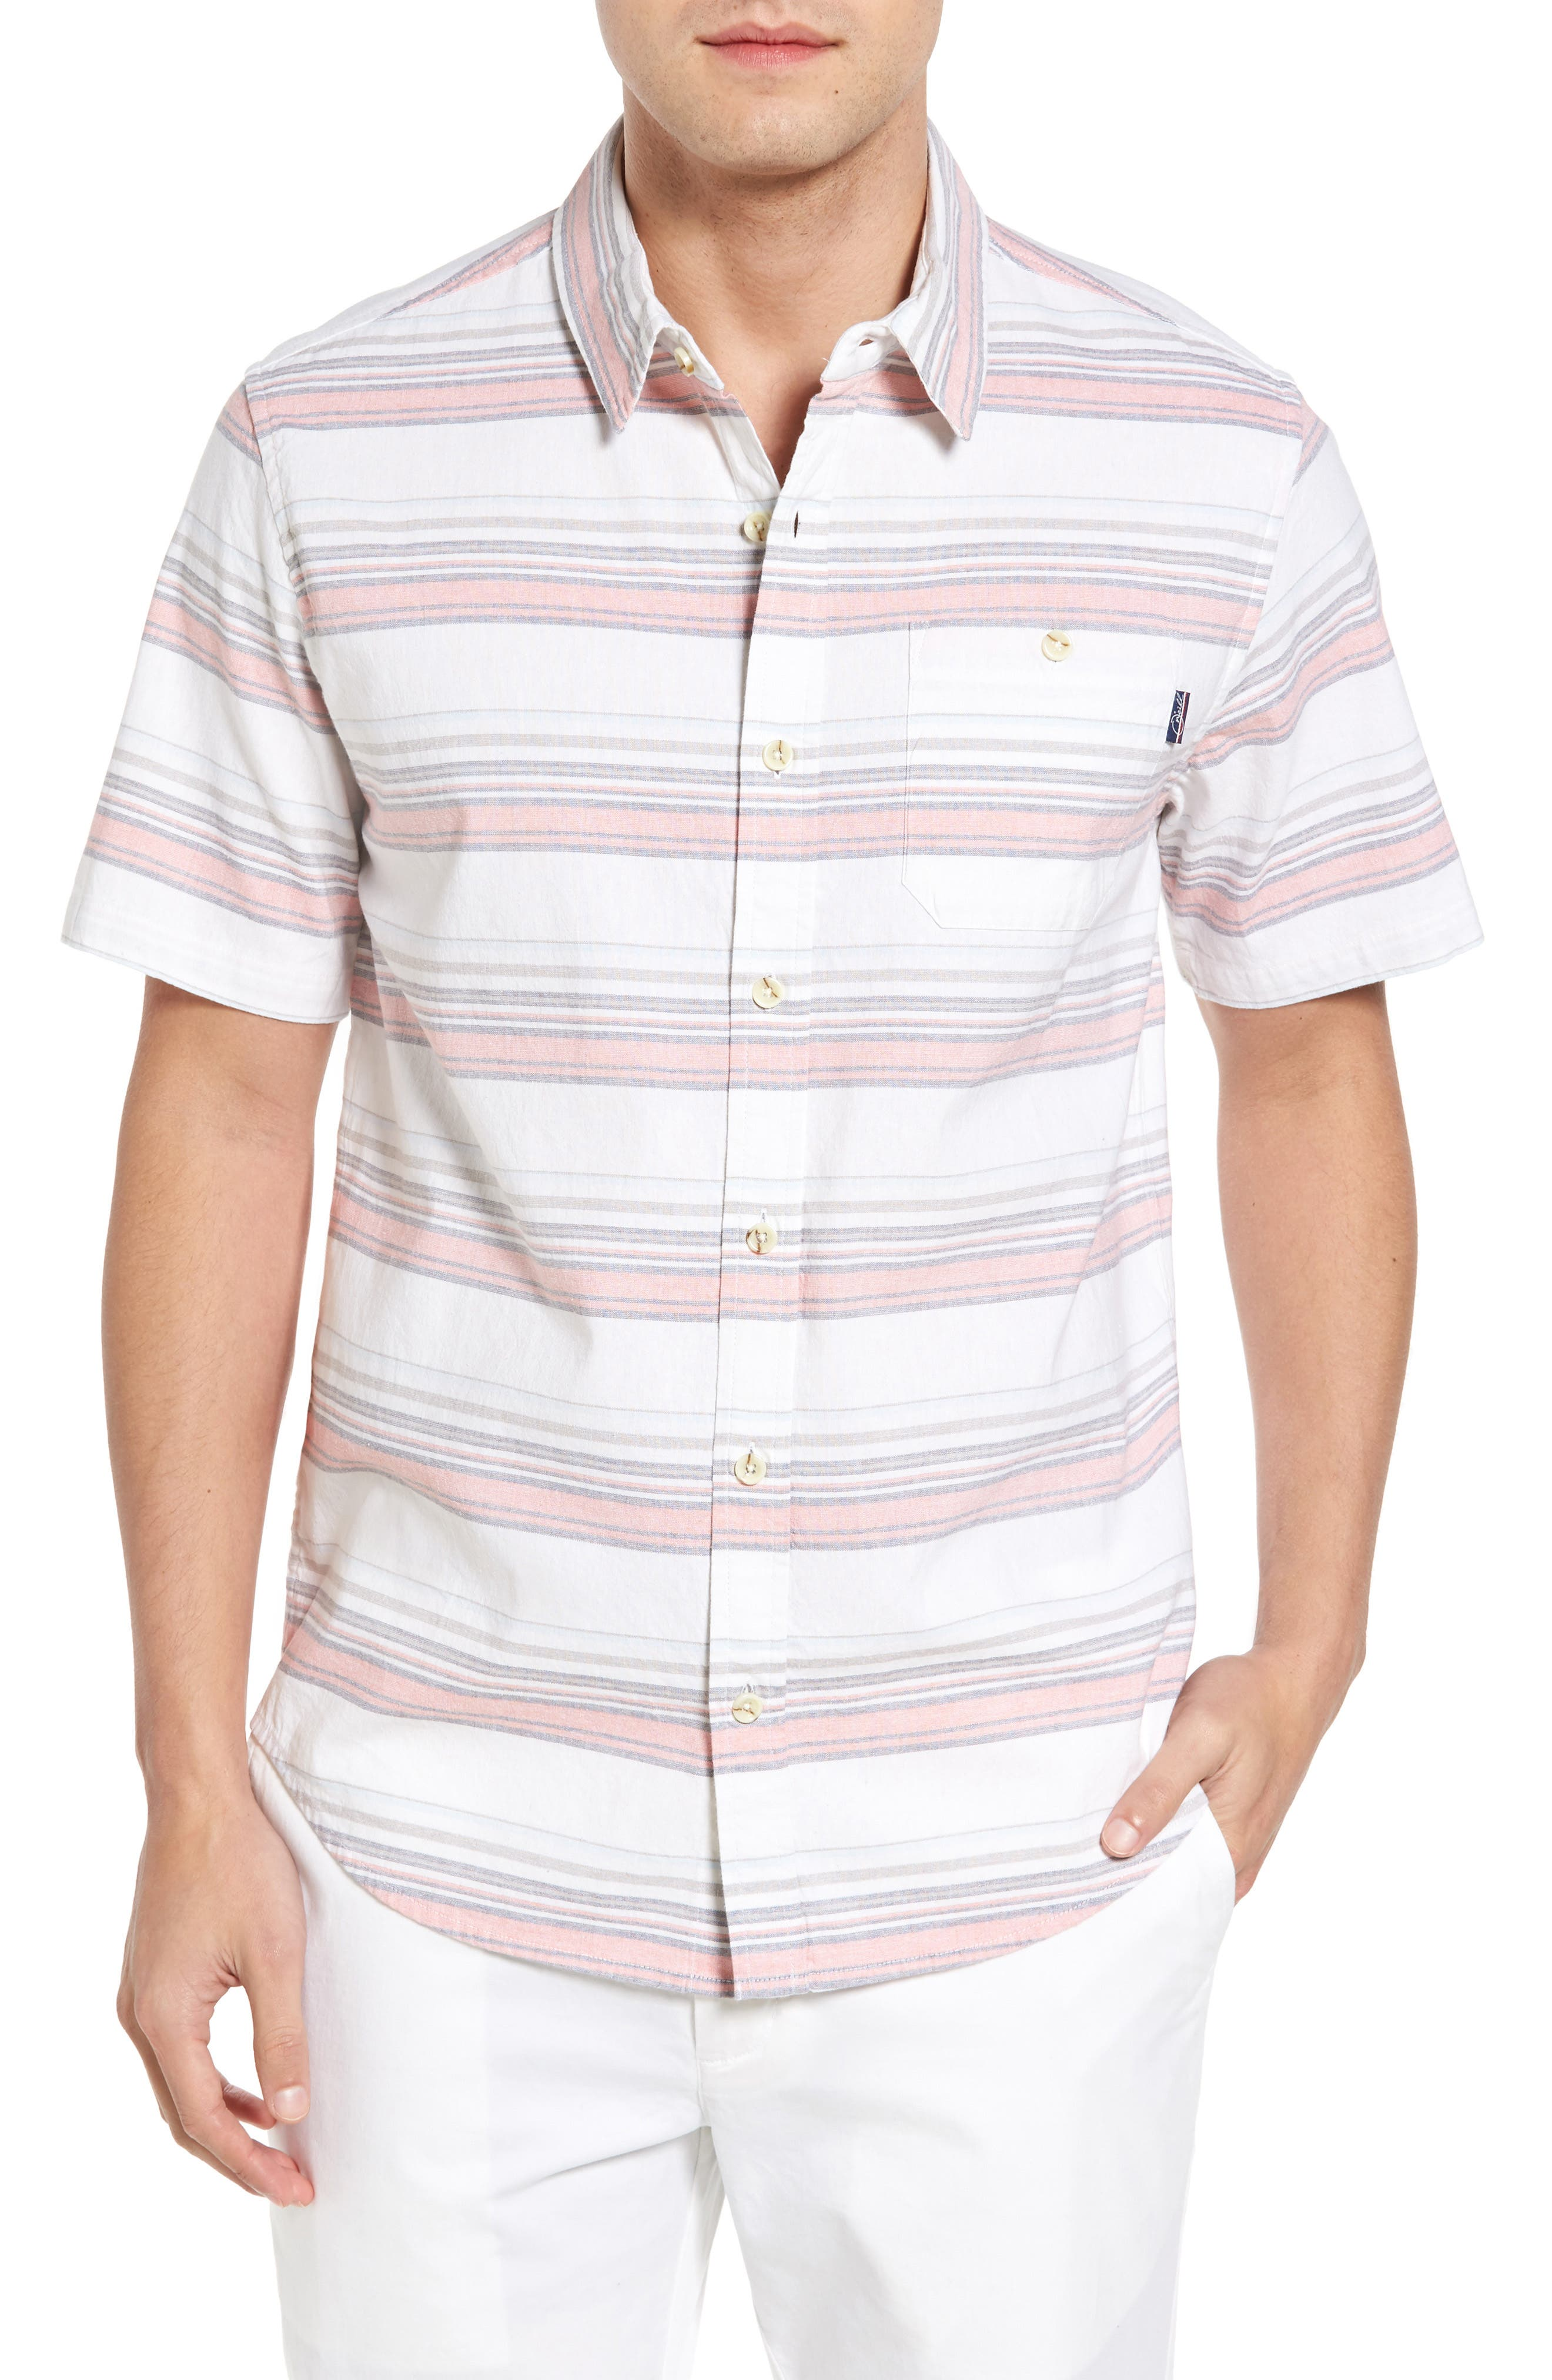 Pura Vida Sport Shirt,                         Main,                         color, 109